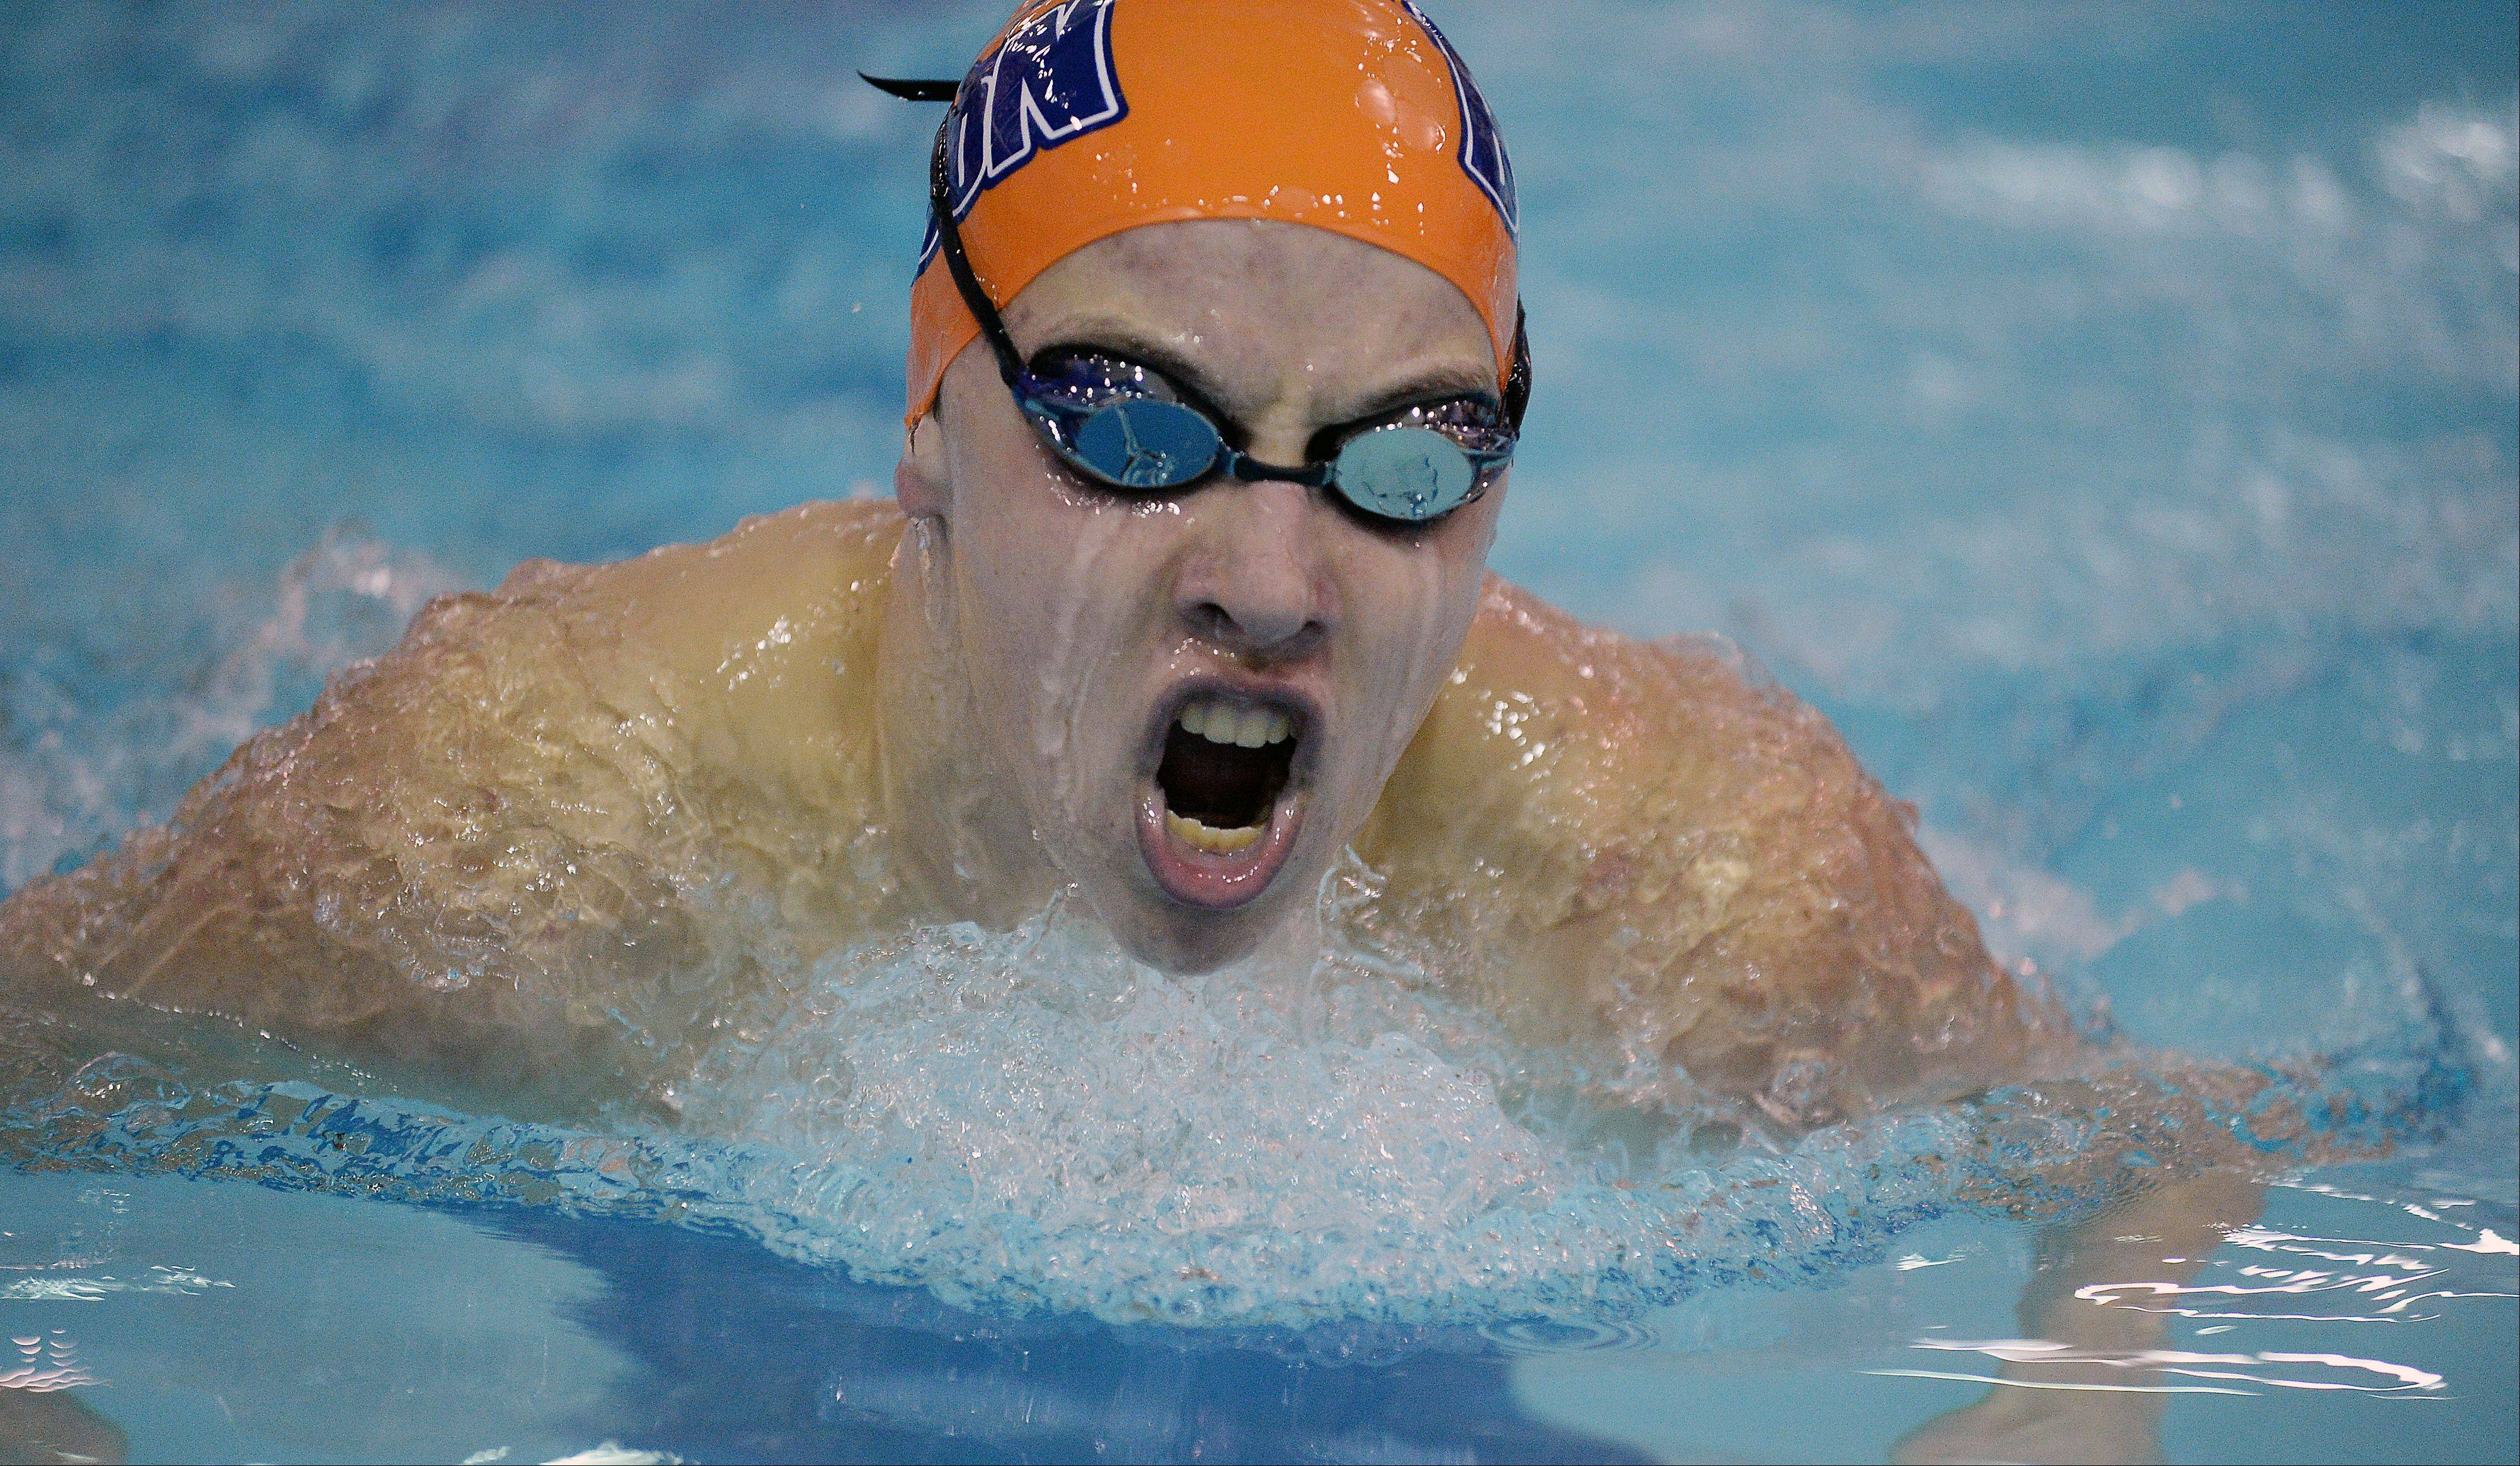 Buffalo Grove's KC Lotzer surges to a winning effort in the 200 IM on Thursday at Olympic Pool in Arlington Heights.